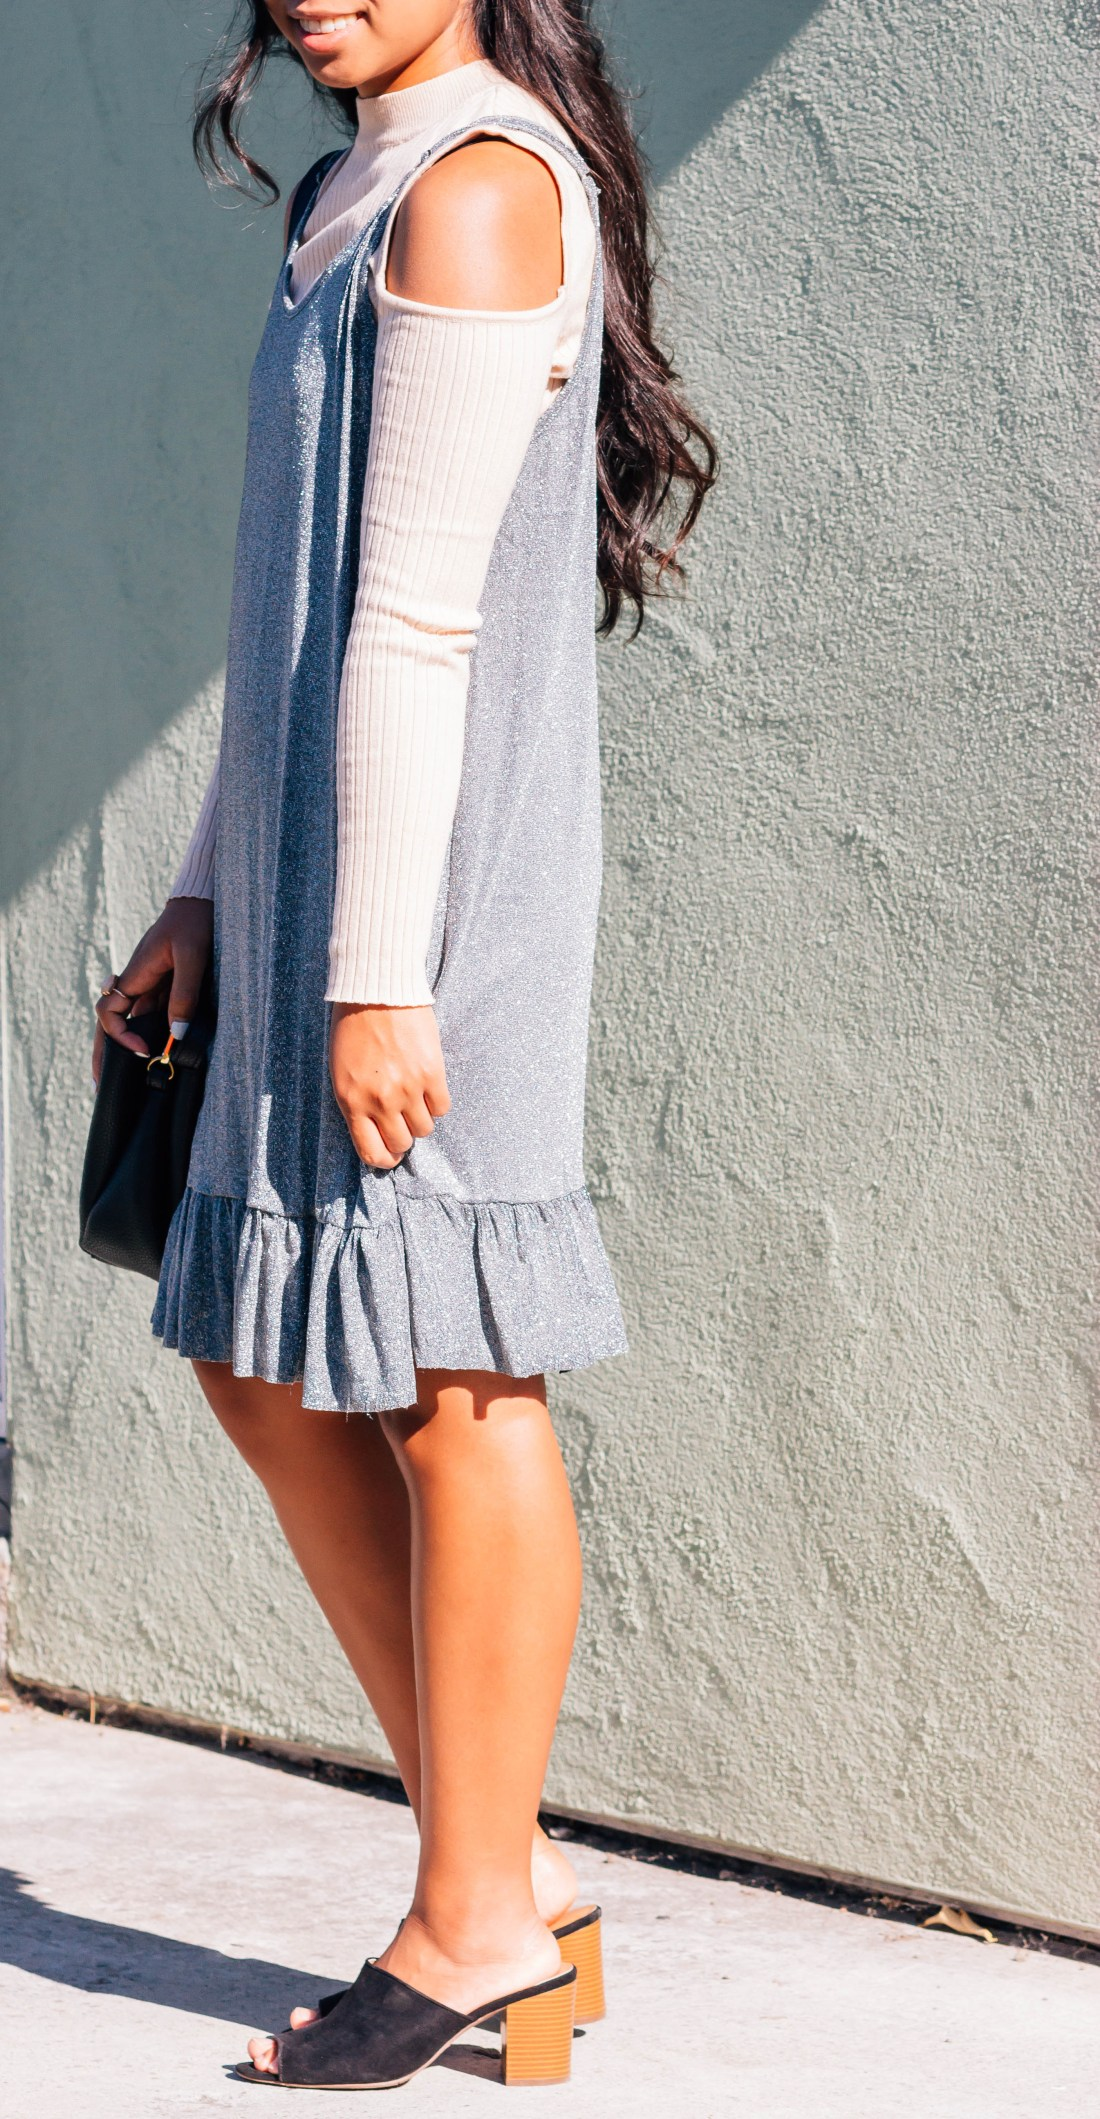 Glitter cami dress over a ribbed top with black heels and purse. This fall outfit is perfect for going out! | In this post, Blaze Ann talks about getting over an embarrassing moment.